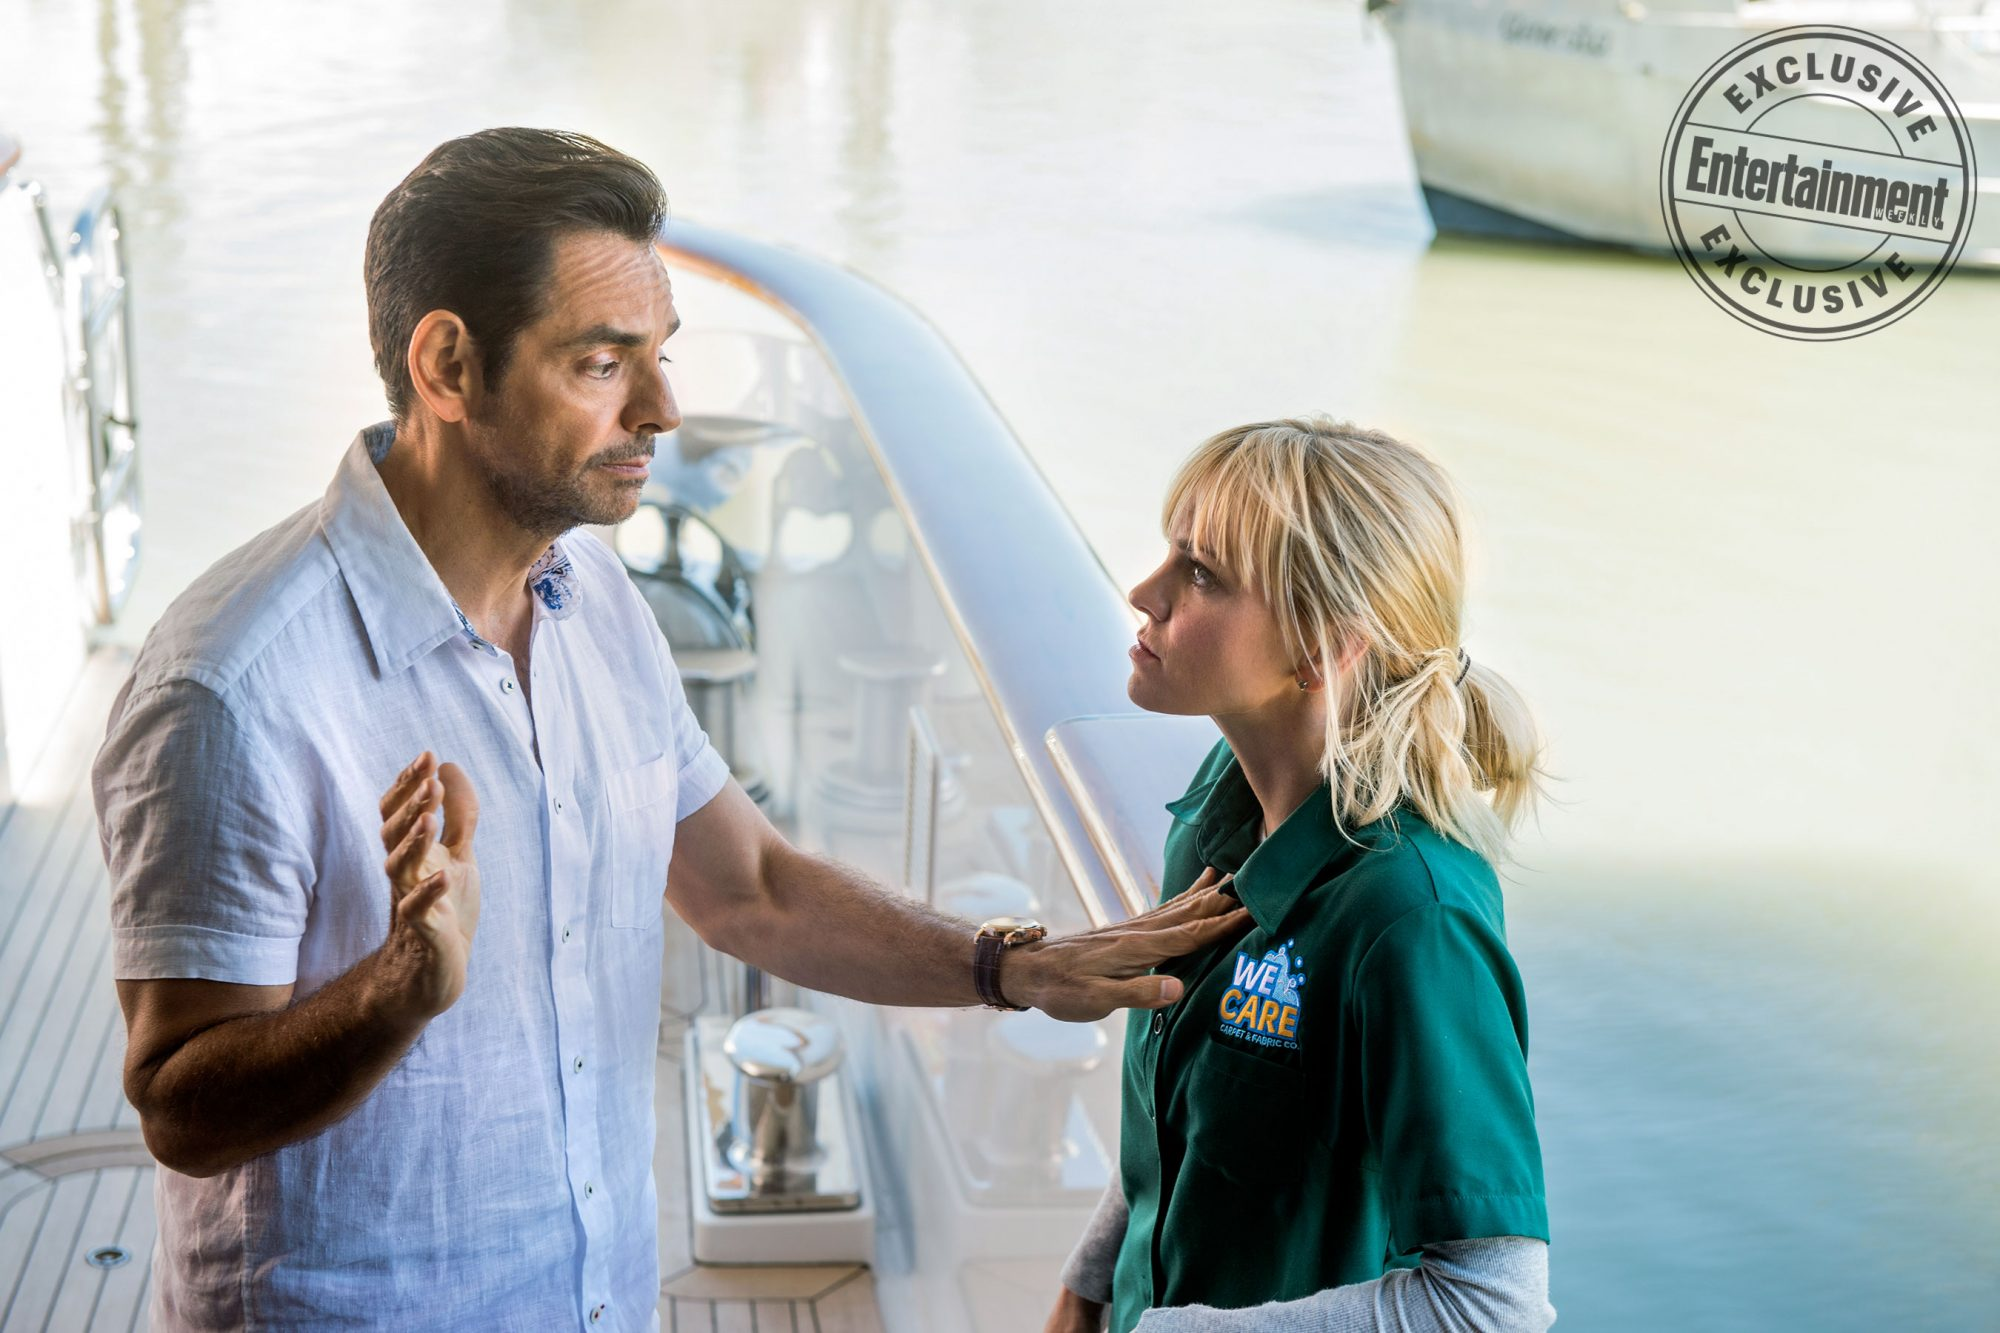 OverboardAnna Faris as Kate and Eugenio Derbez